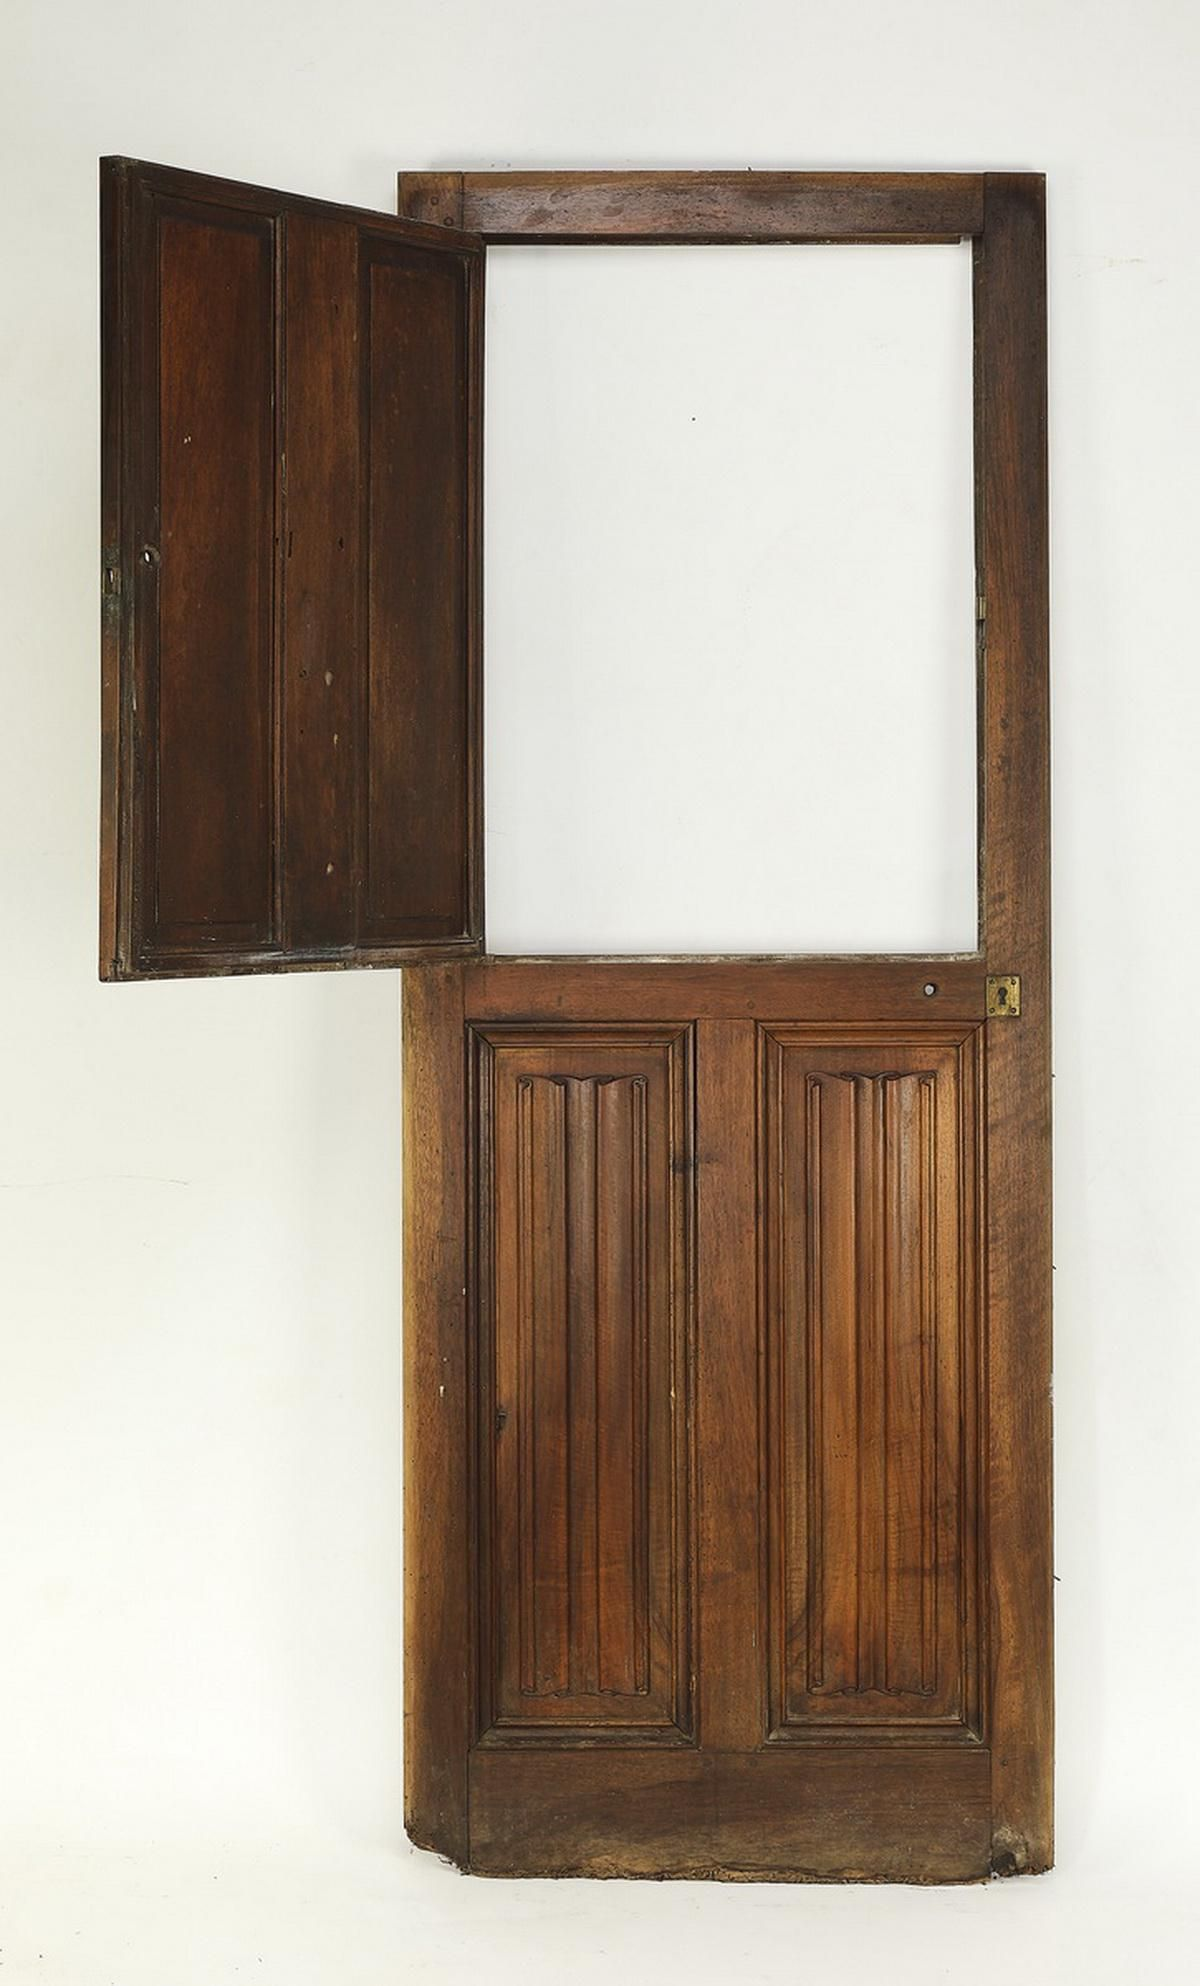 Early 20th c. Gothic Revival double hung door